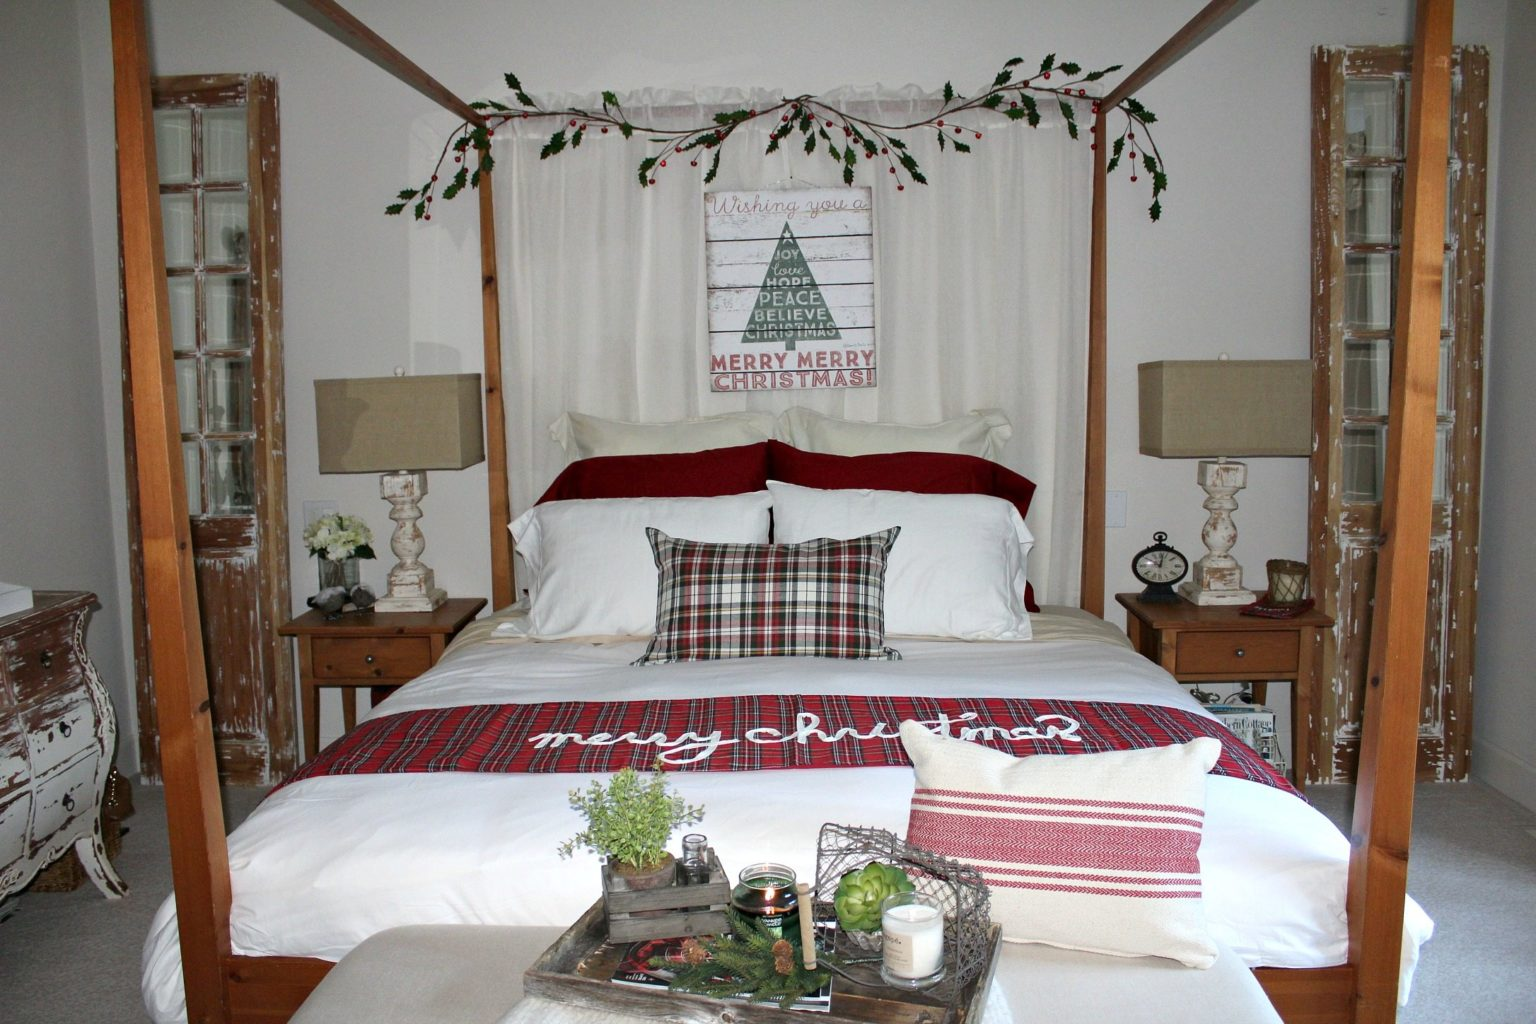 Country Christmas Bedroom decor with traditional farmhouse style